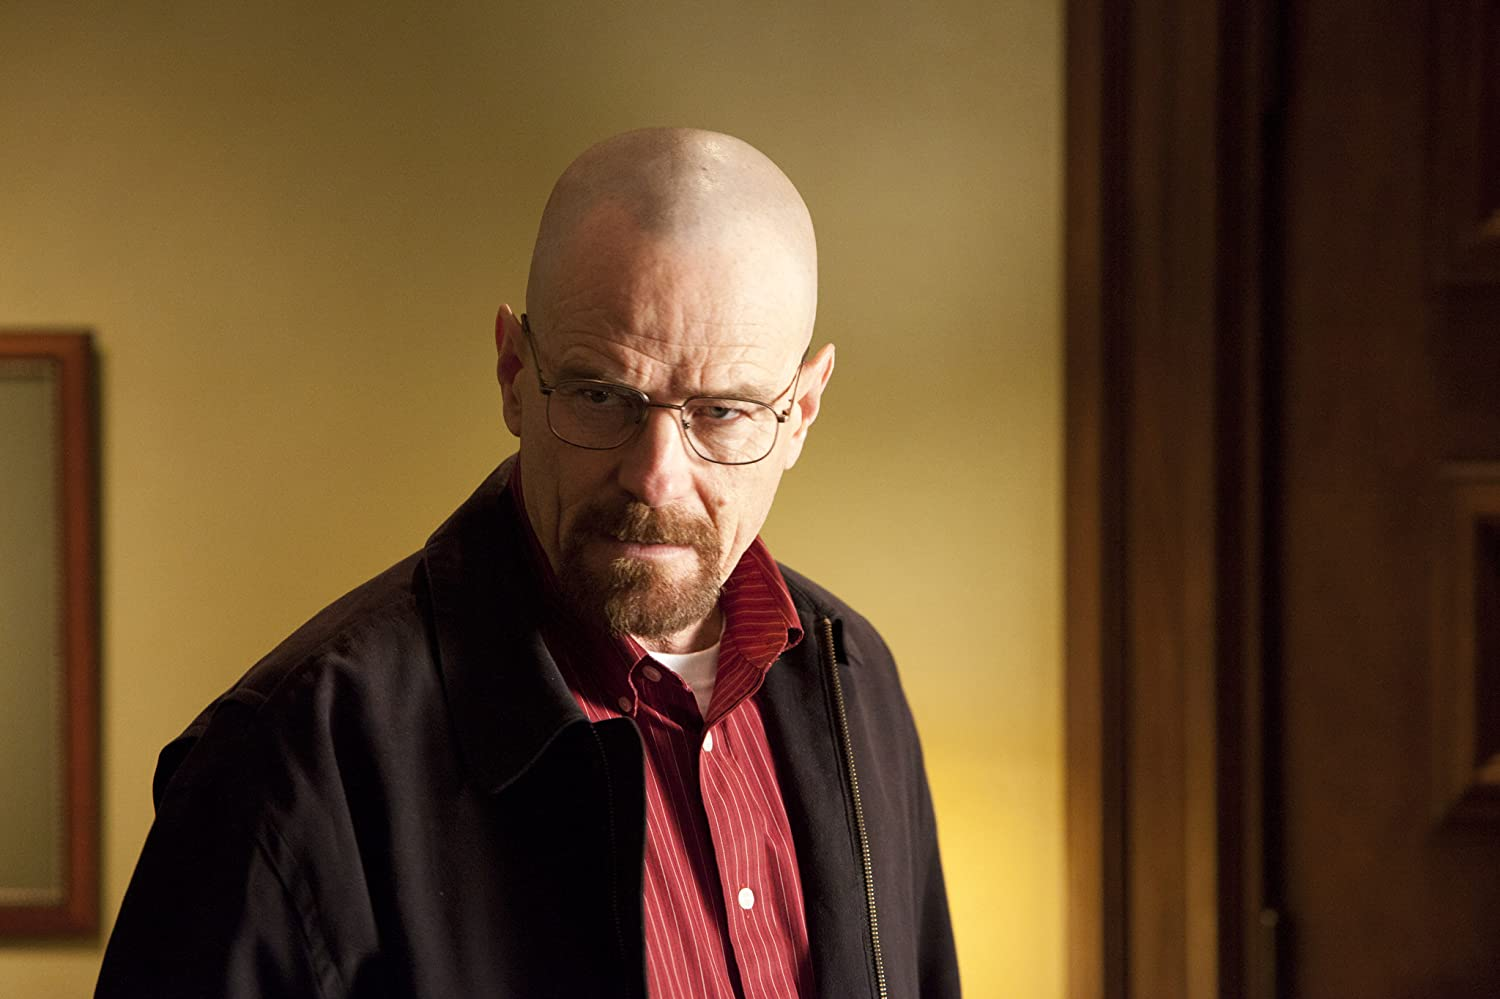 Bryan Cranston in Breaking Bad (2008)